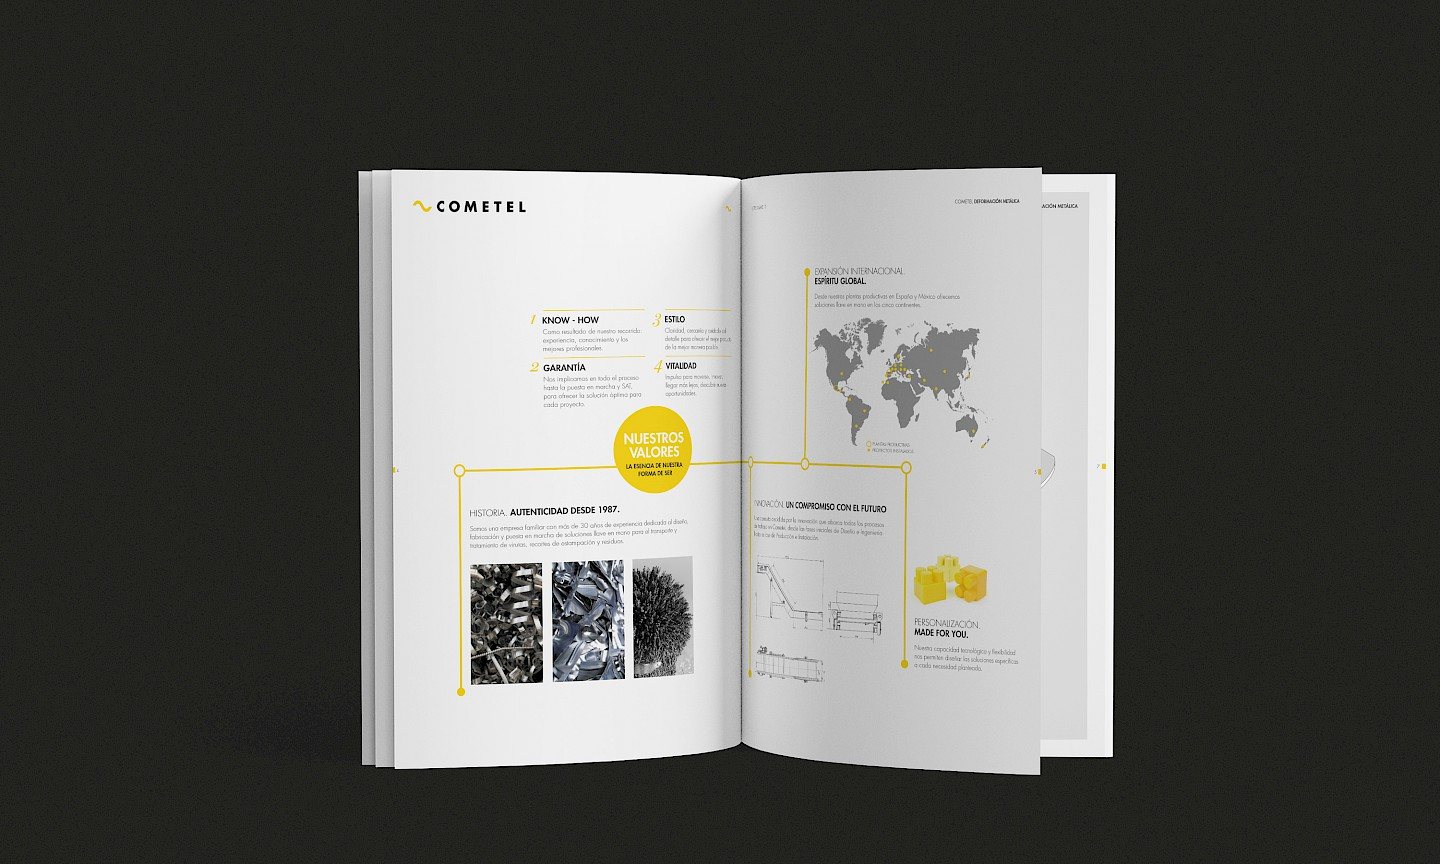 move catalogo branding design technology 03 cometel